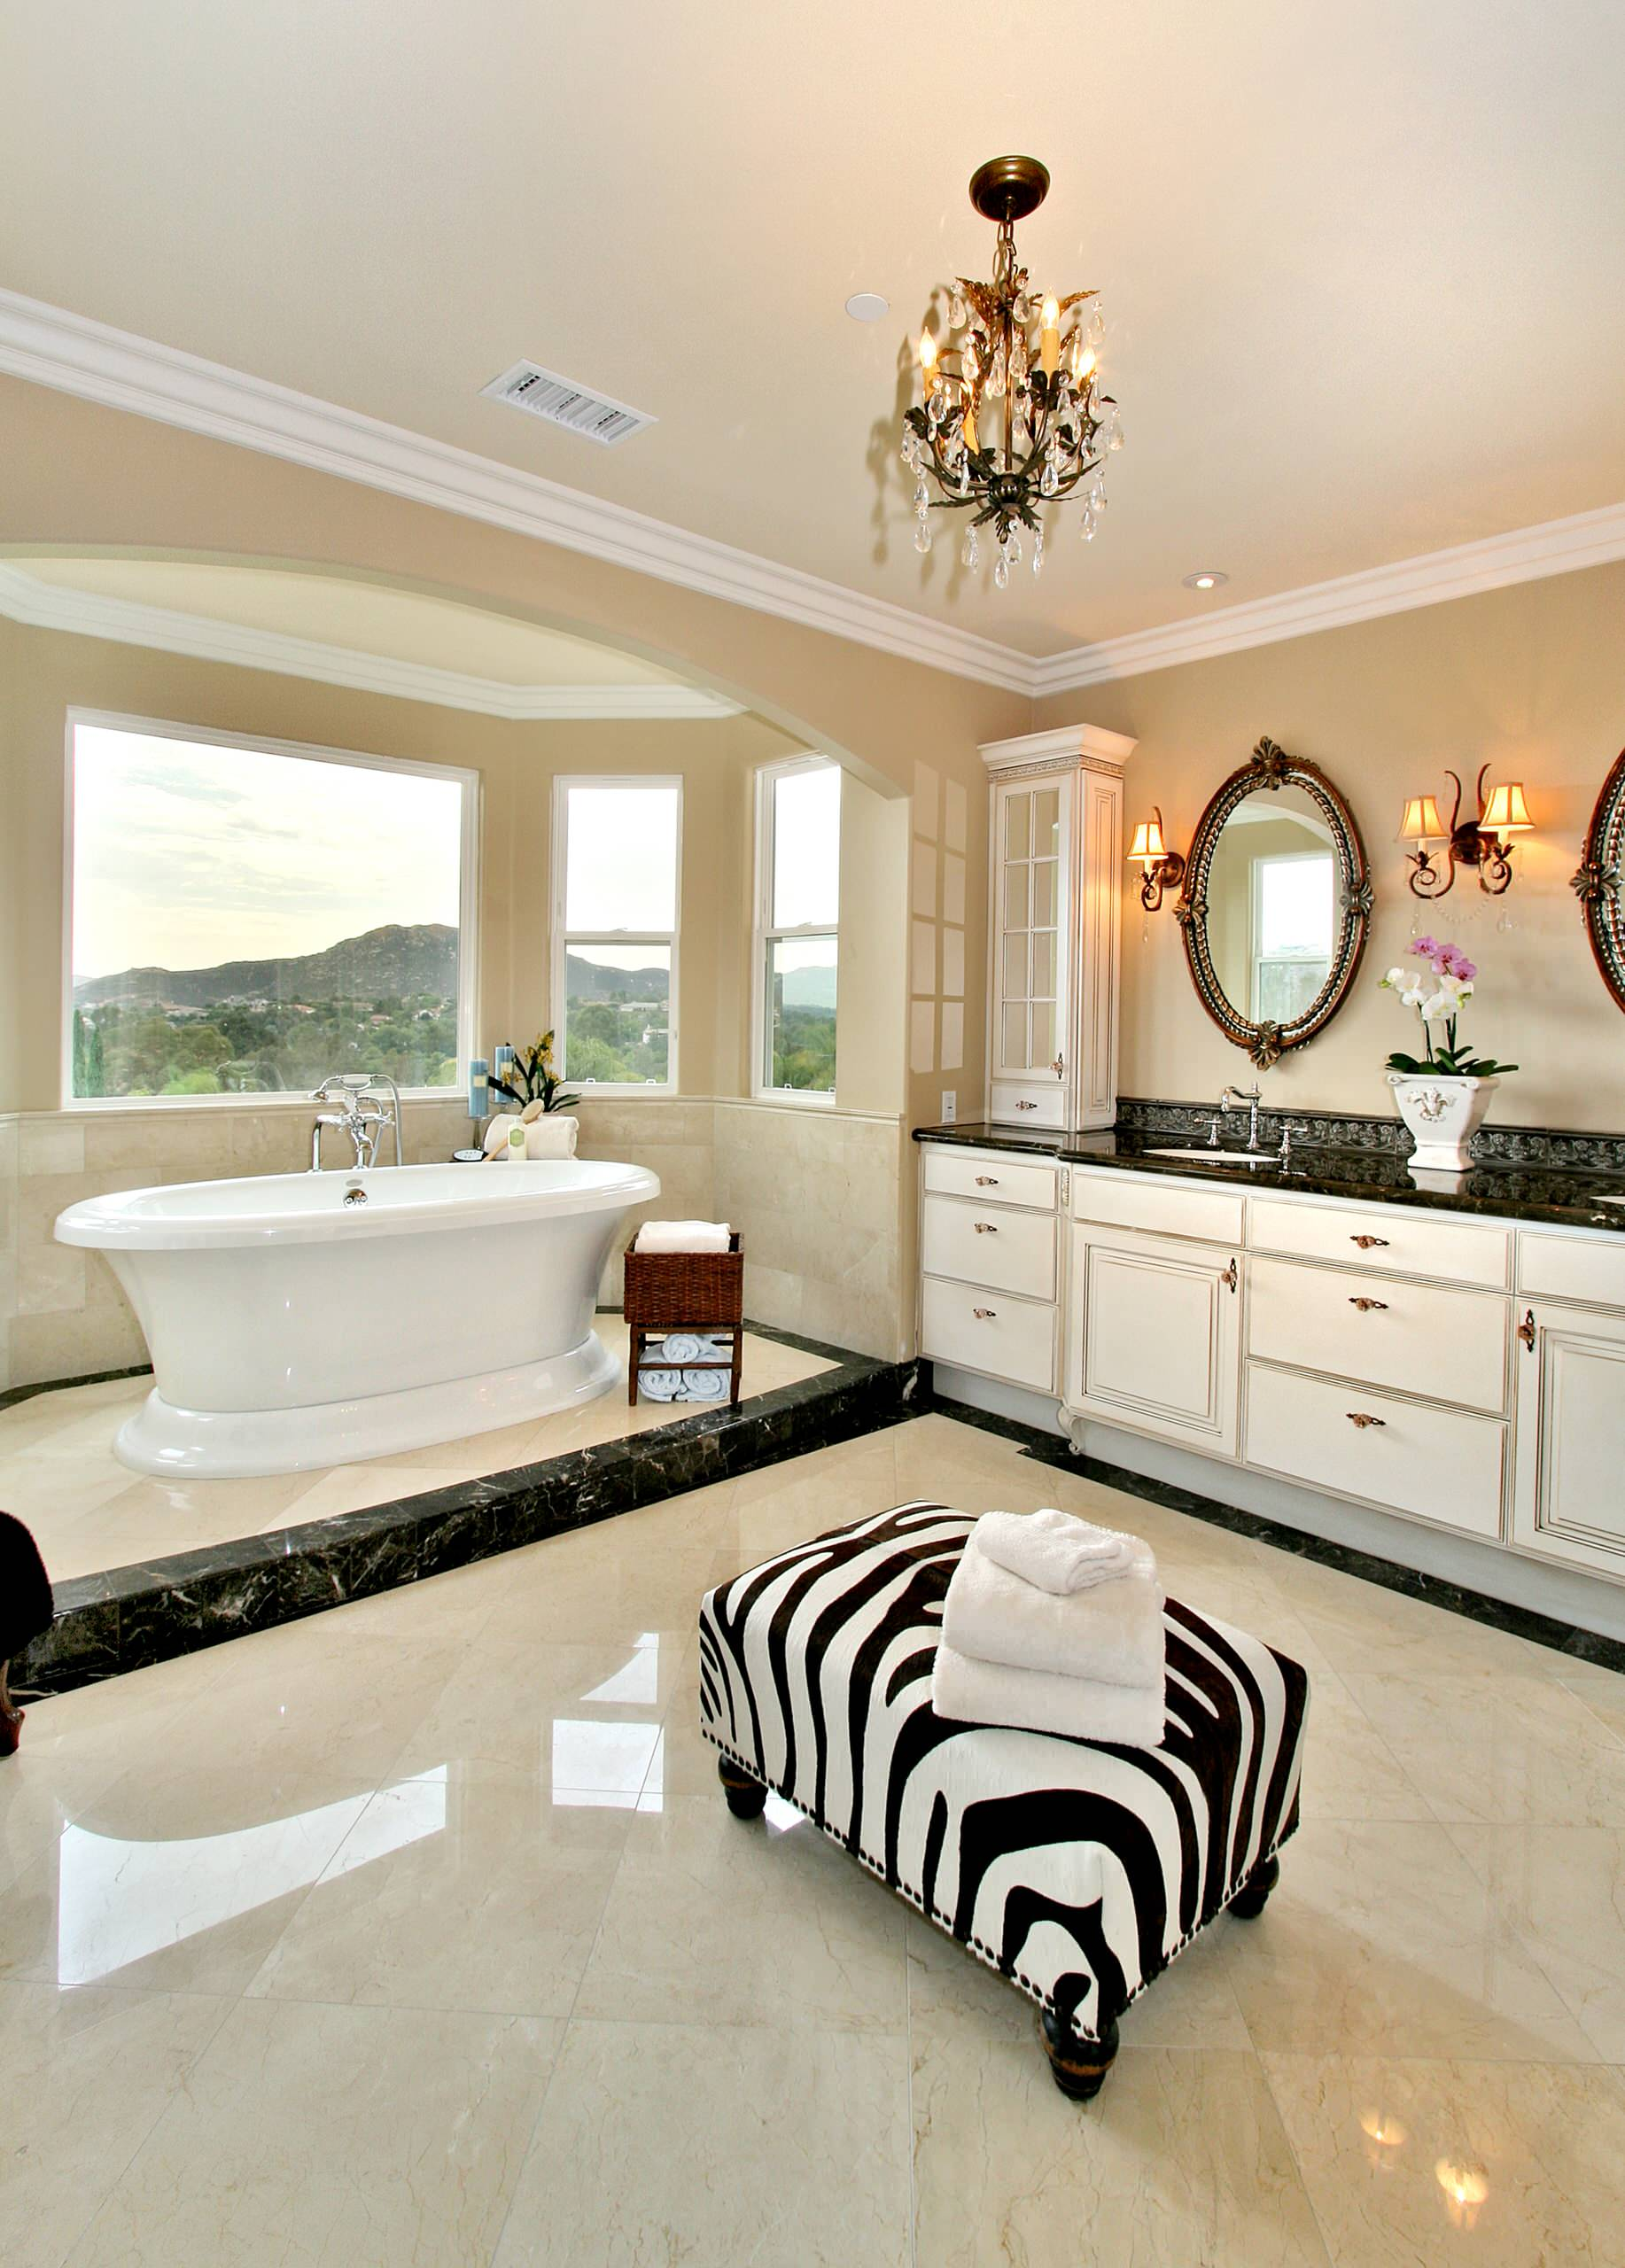 Interior Design Ideas with Crema Marfil Marble from Turkey: Contemporary Bathroom With Alcove Plus Animal Print Ottoman And Bay Window Also Black Countertops With Crema Marfil Marble Plus Crystal Chandelier And Freestanding Tub